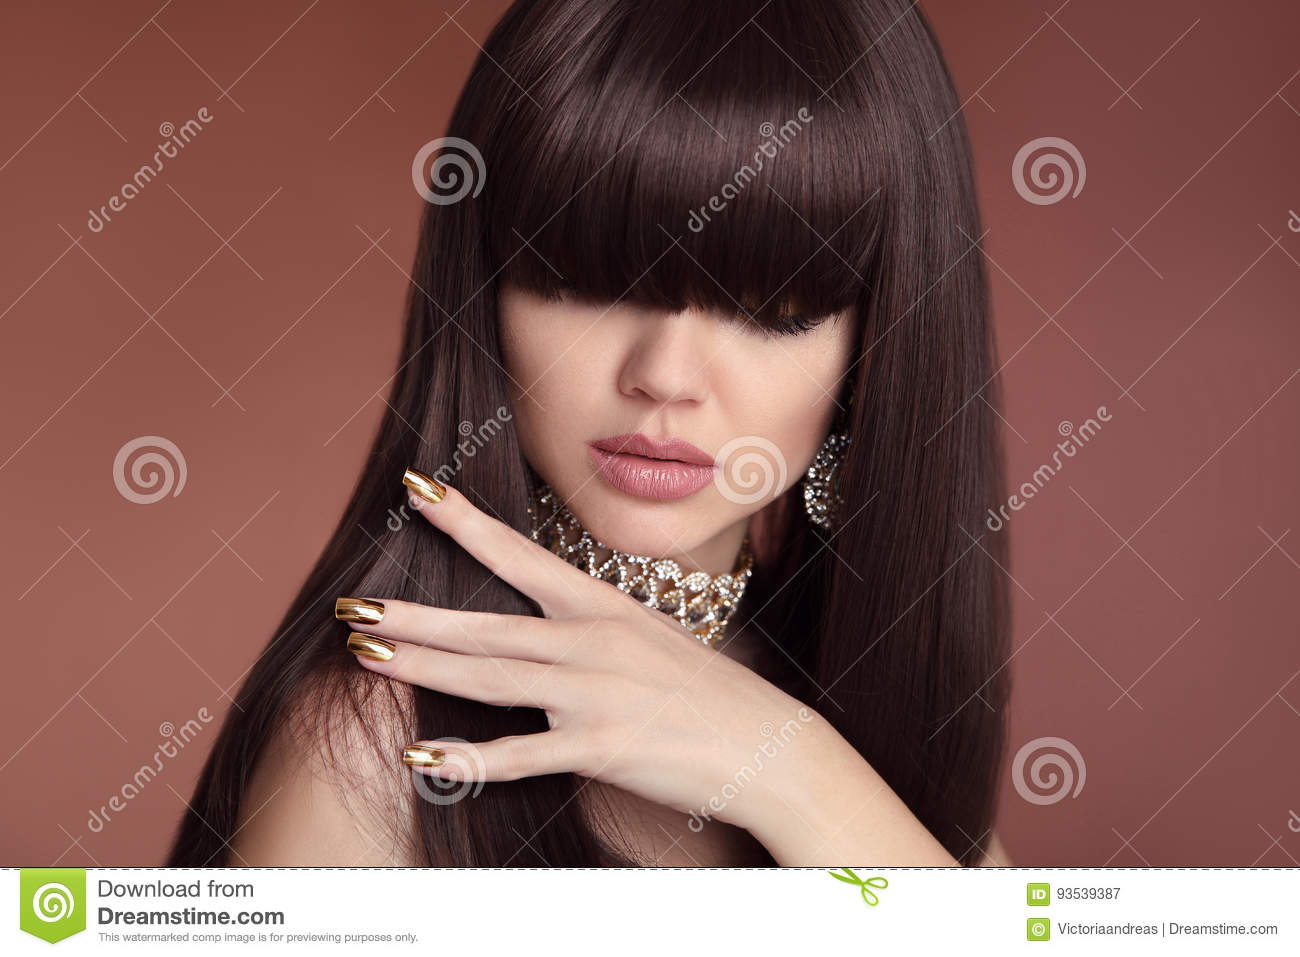 Beauty hair. Vogue Hairstyle. Fashion Manicure. Portrait of gorgeous young dark-haired woman. Sensual lips makeup. Golden polish